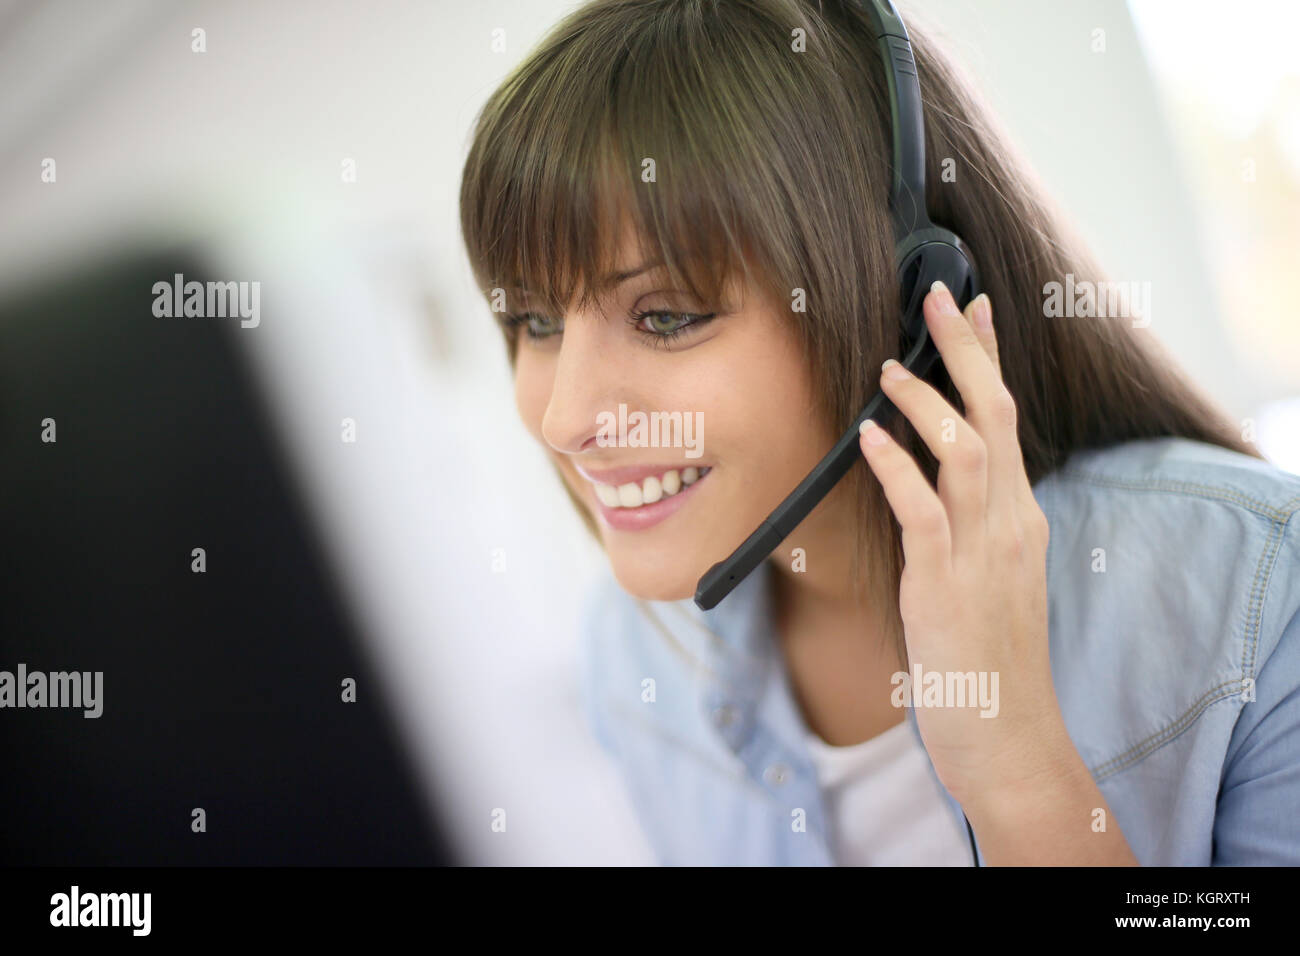 Sales Assistant Stock Photos & Sales Assistant Stock ...